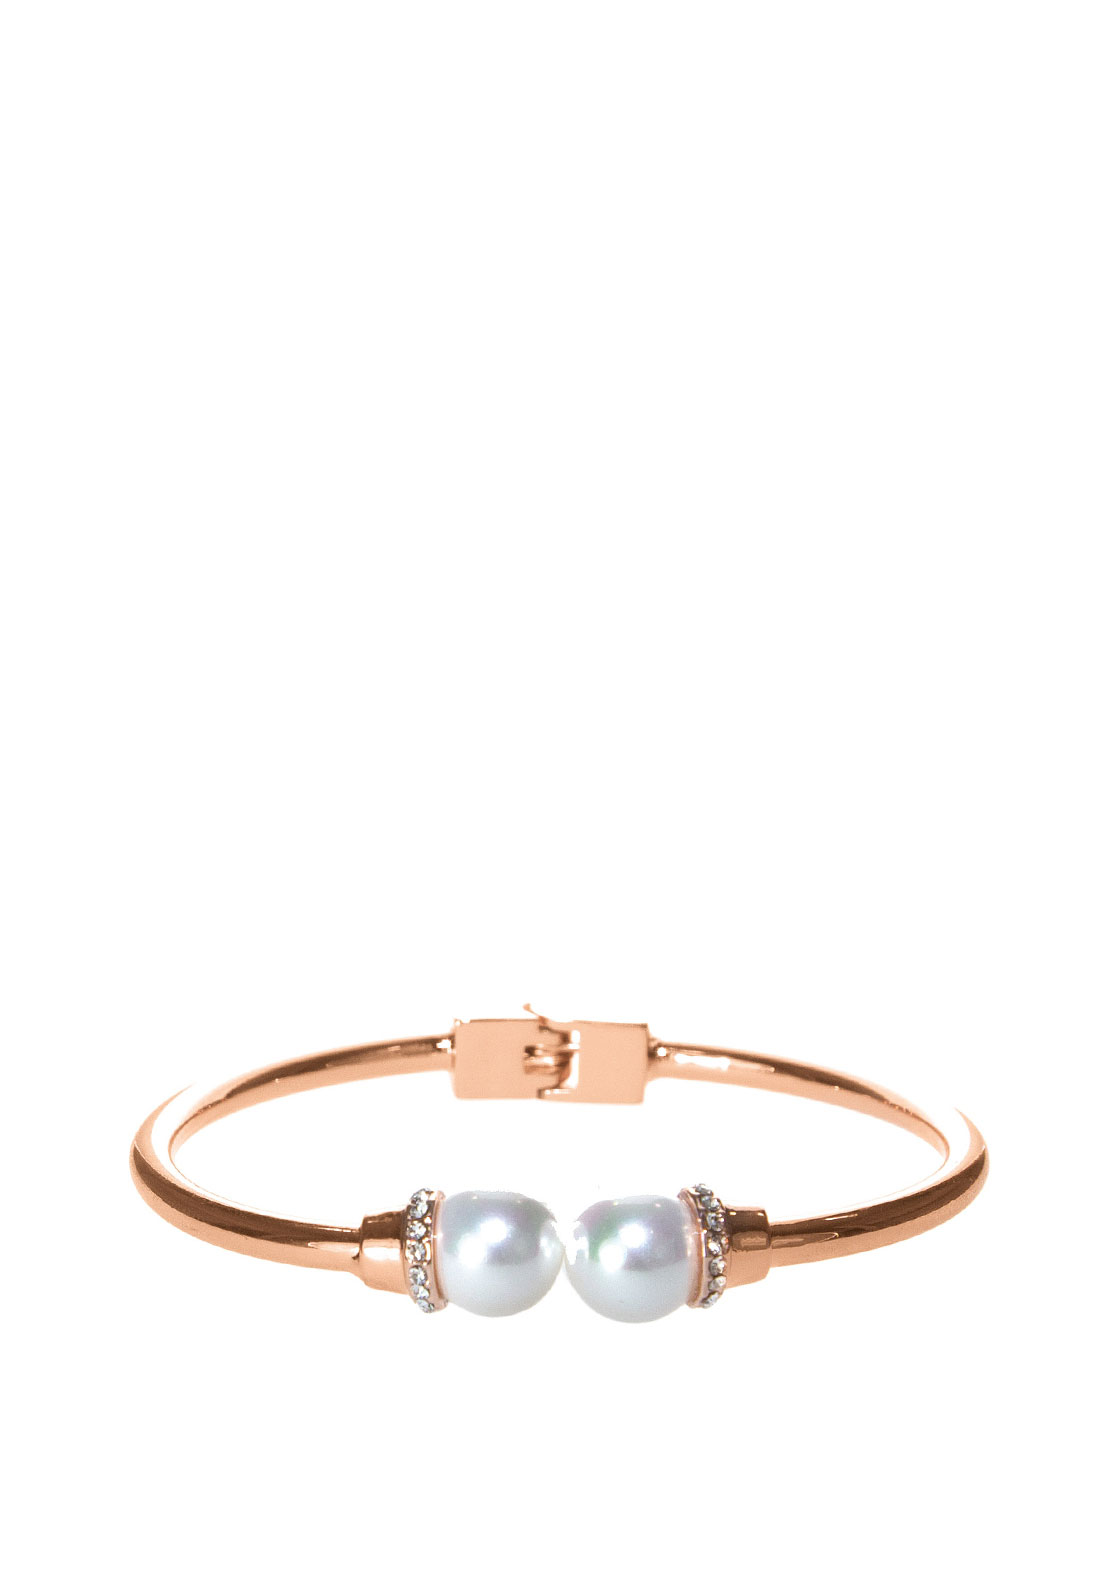 Absolute Hinged Pearl Bangle, Rose Gold